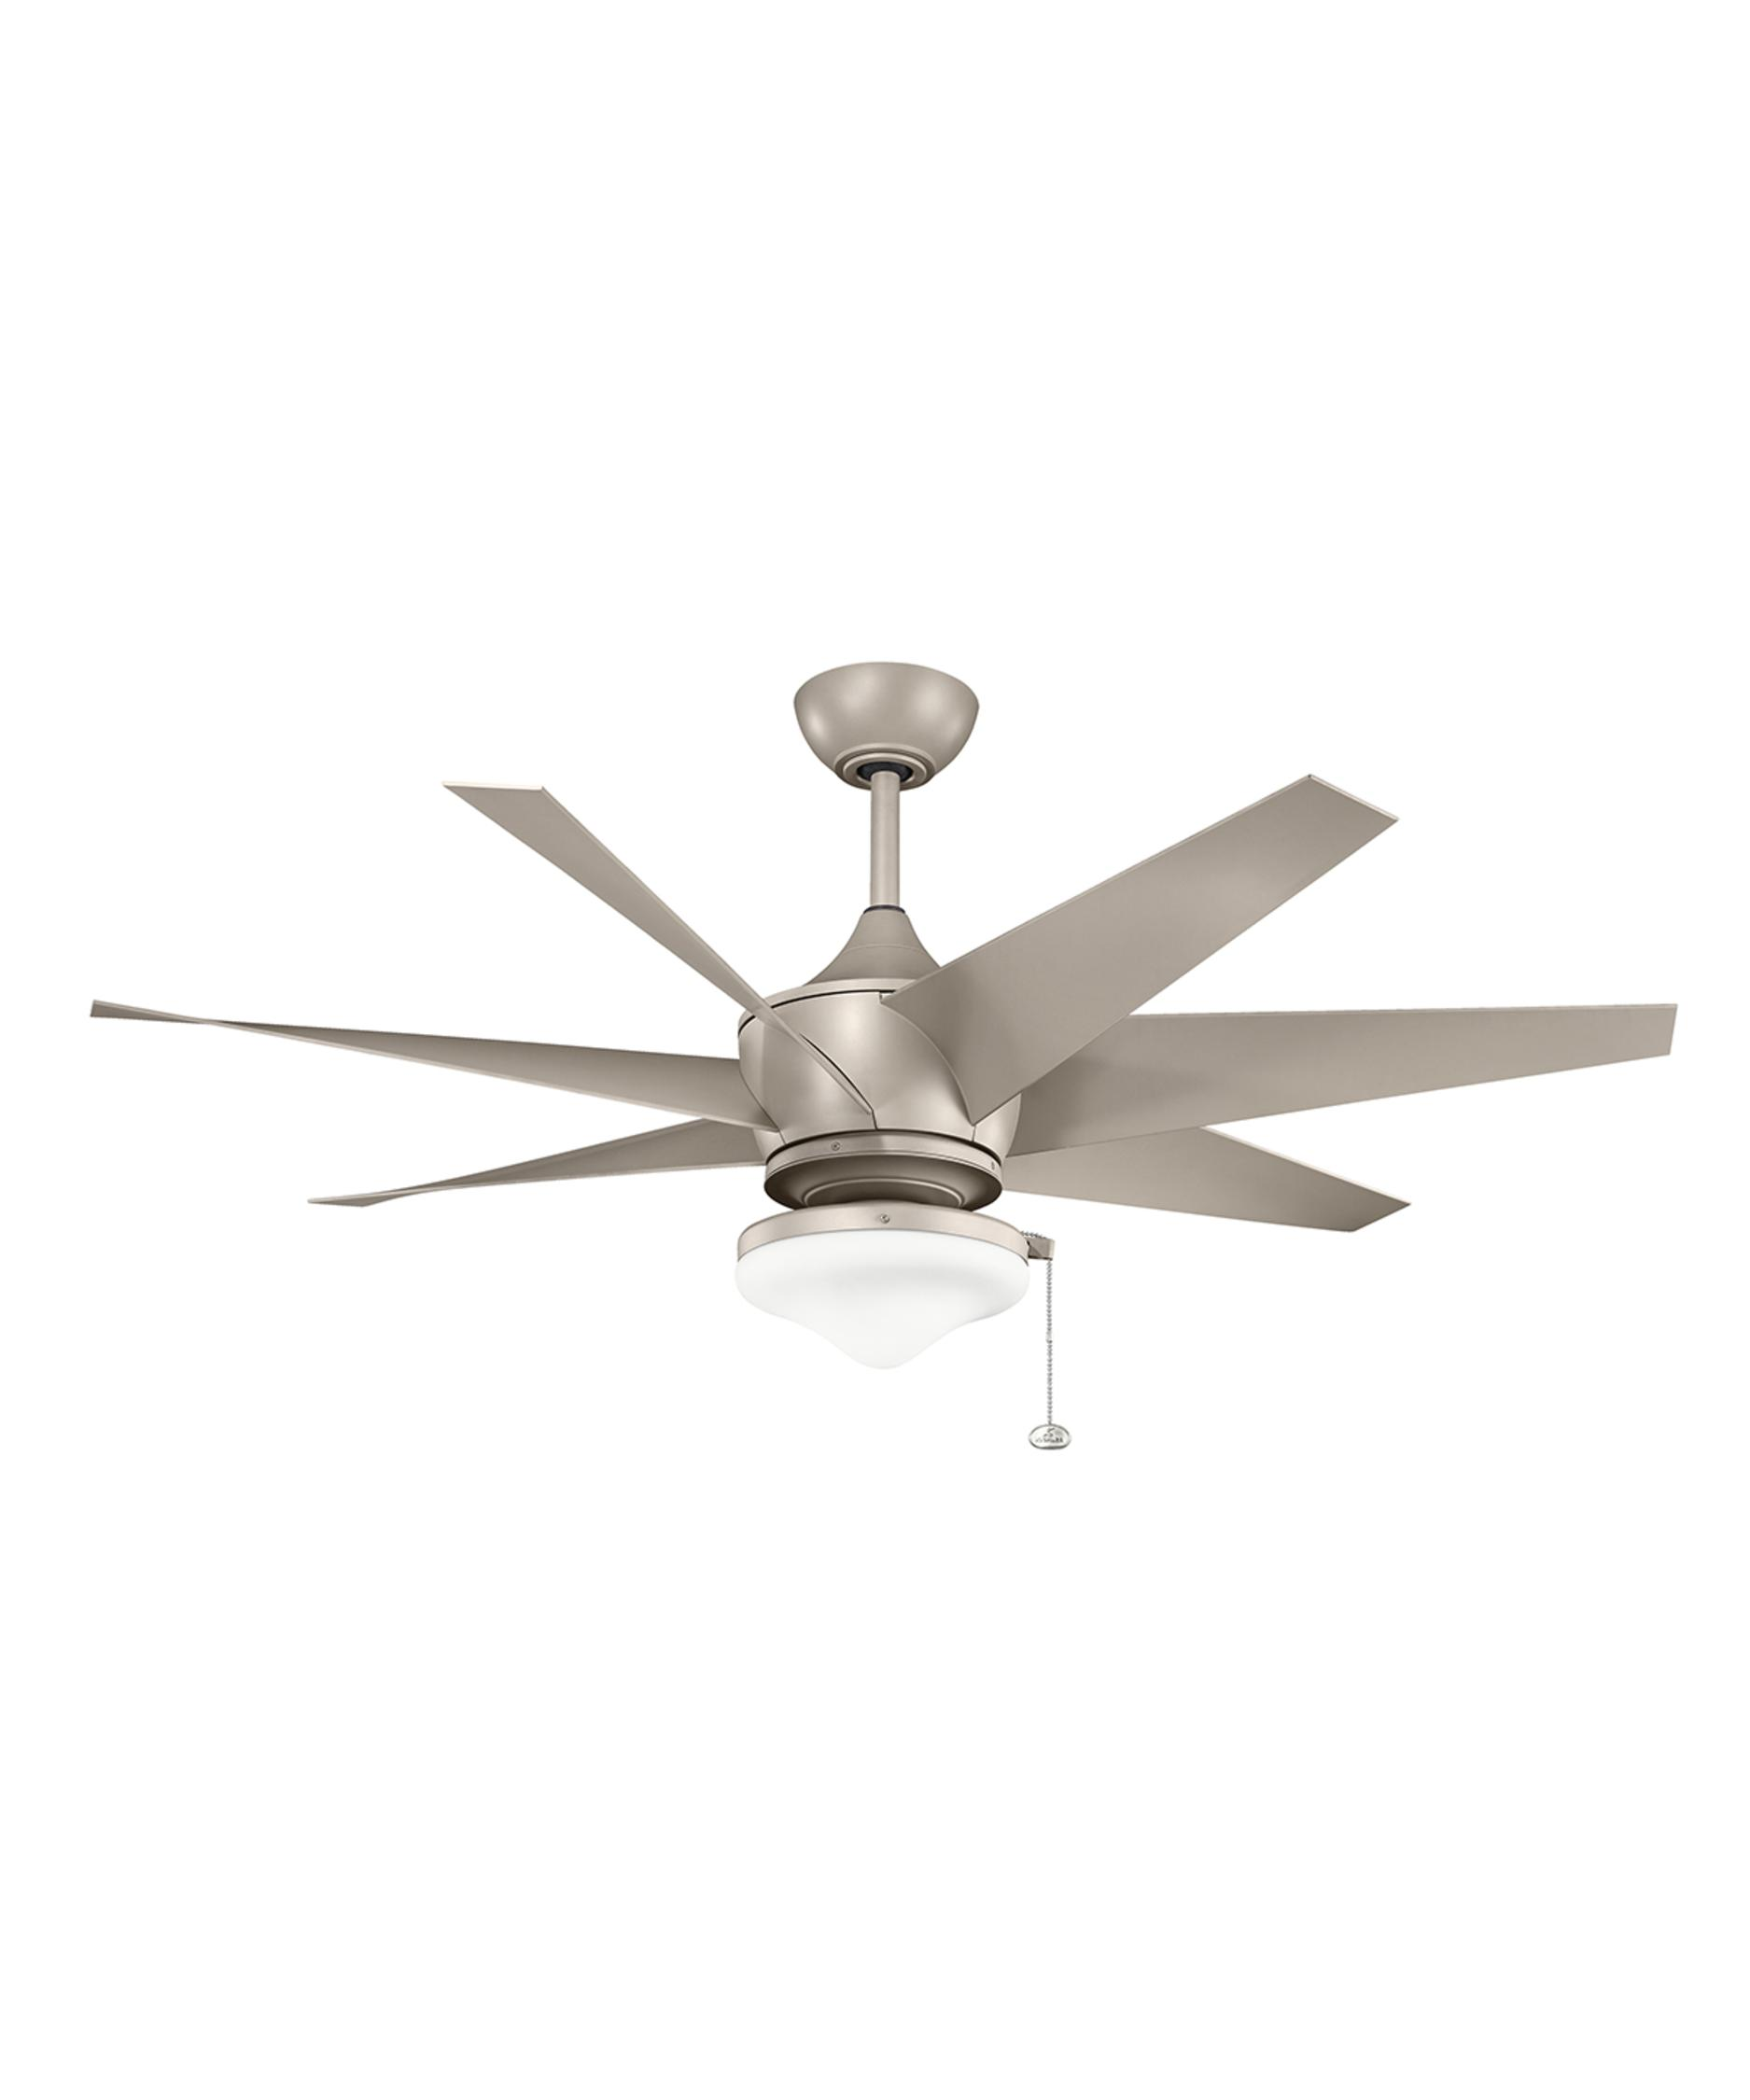 7 Blade Ceiling Fan: Shown in Antique Satin Silver finish,Lighting